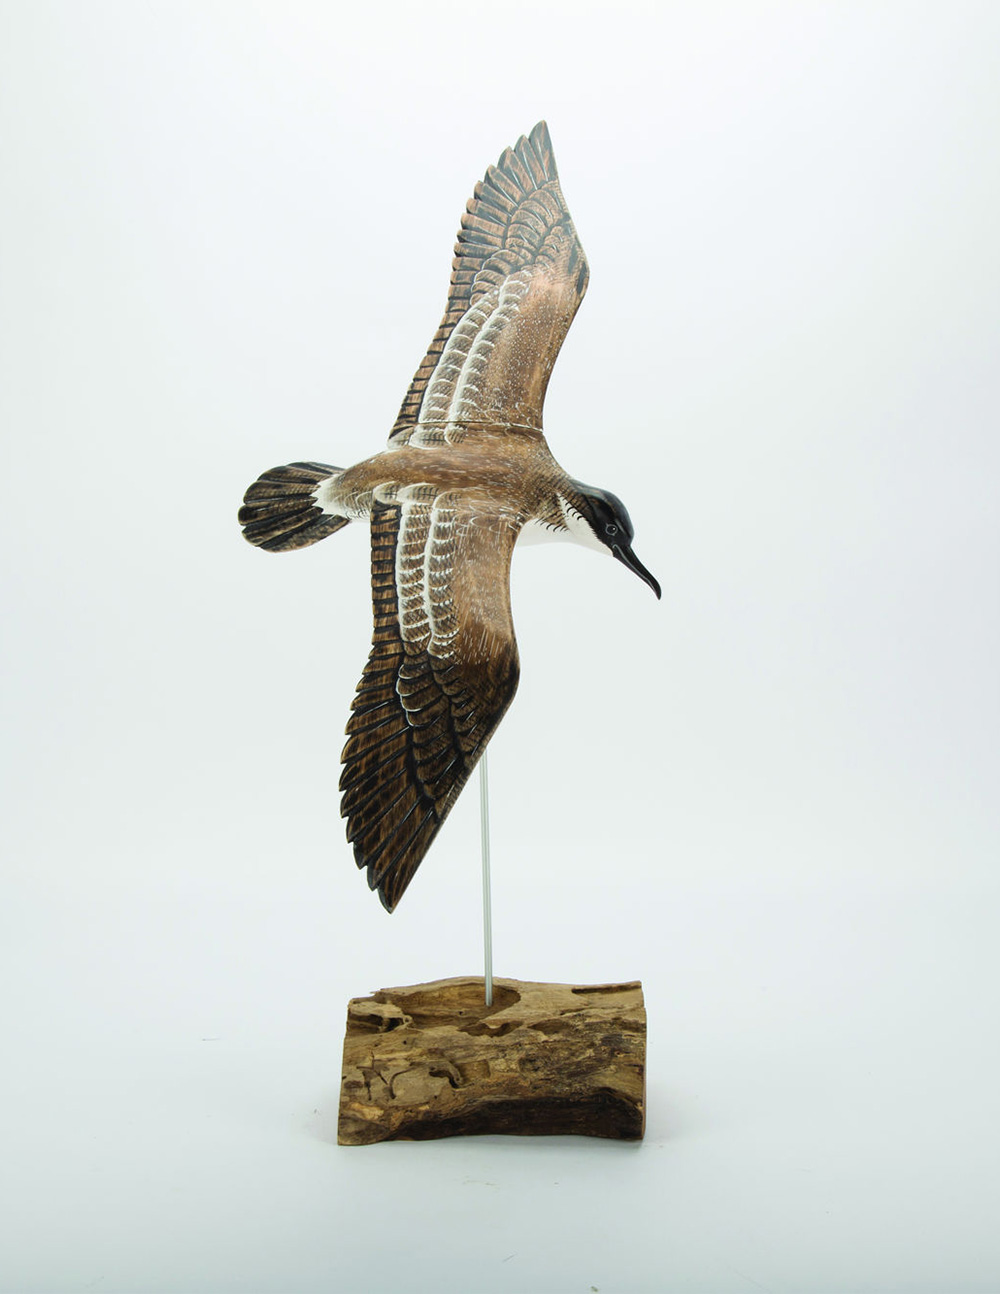 Archipelago bird shearwater wooden sculpture fair traded avant